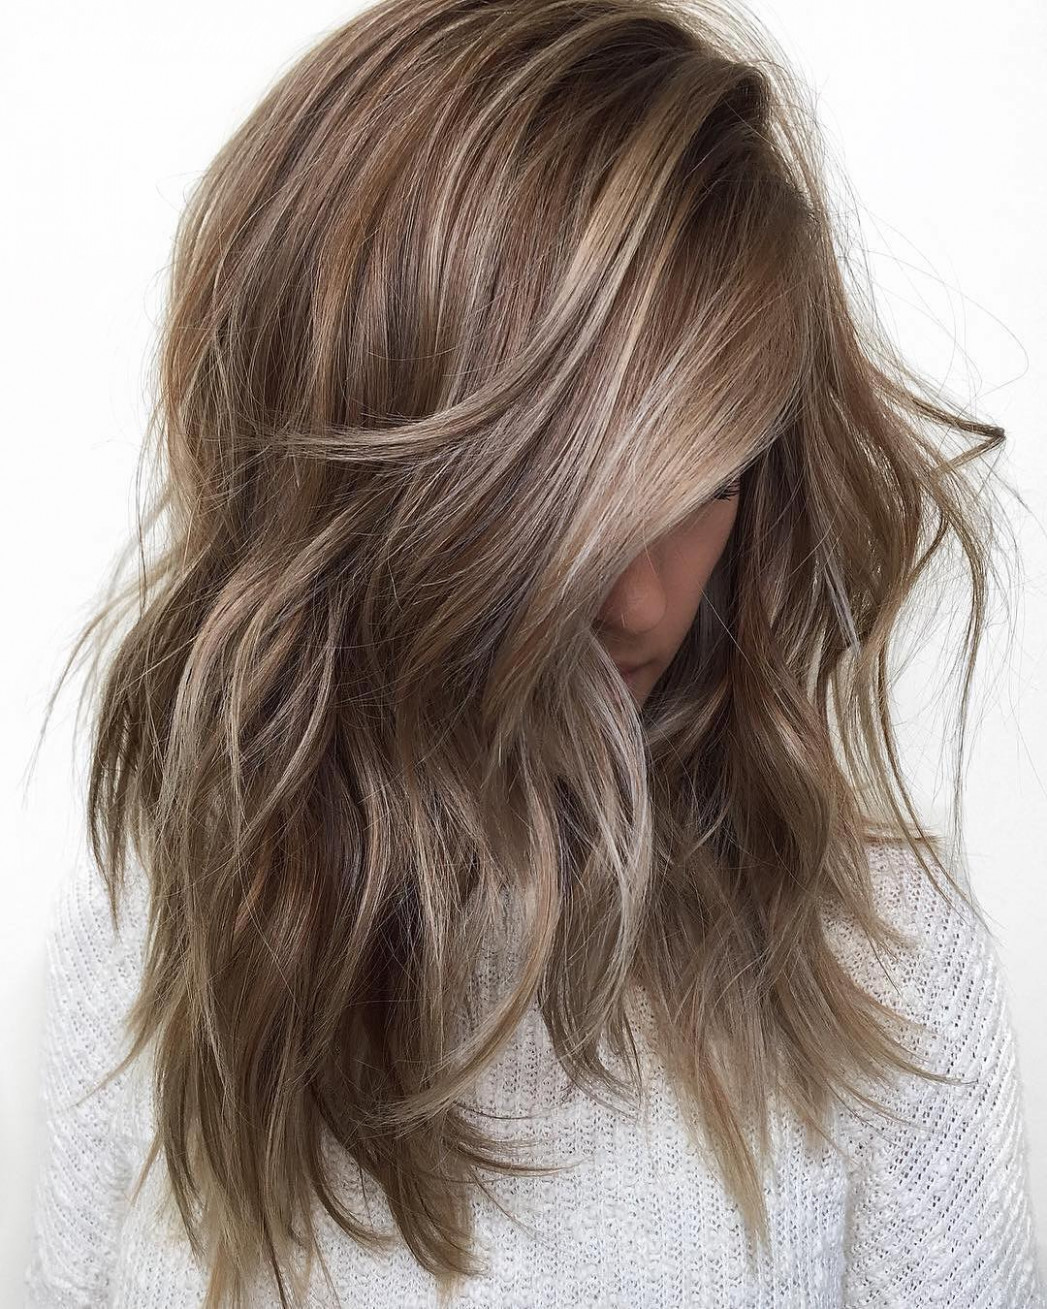 Balayage ombre hair styles for shoulder length hair nicestyles ombre hair mid length